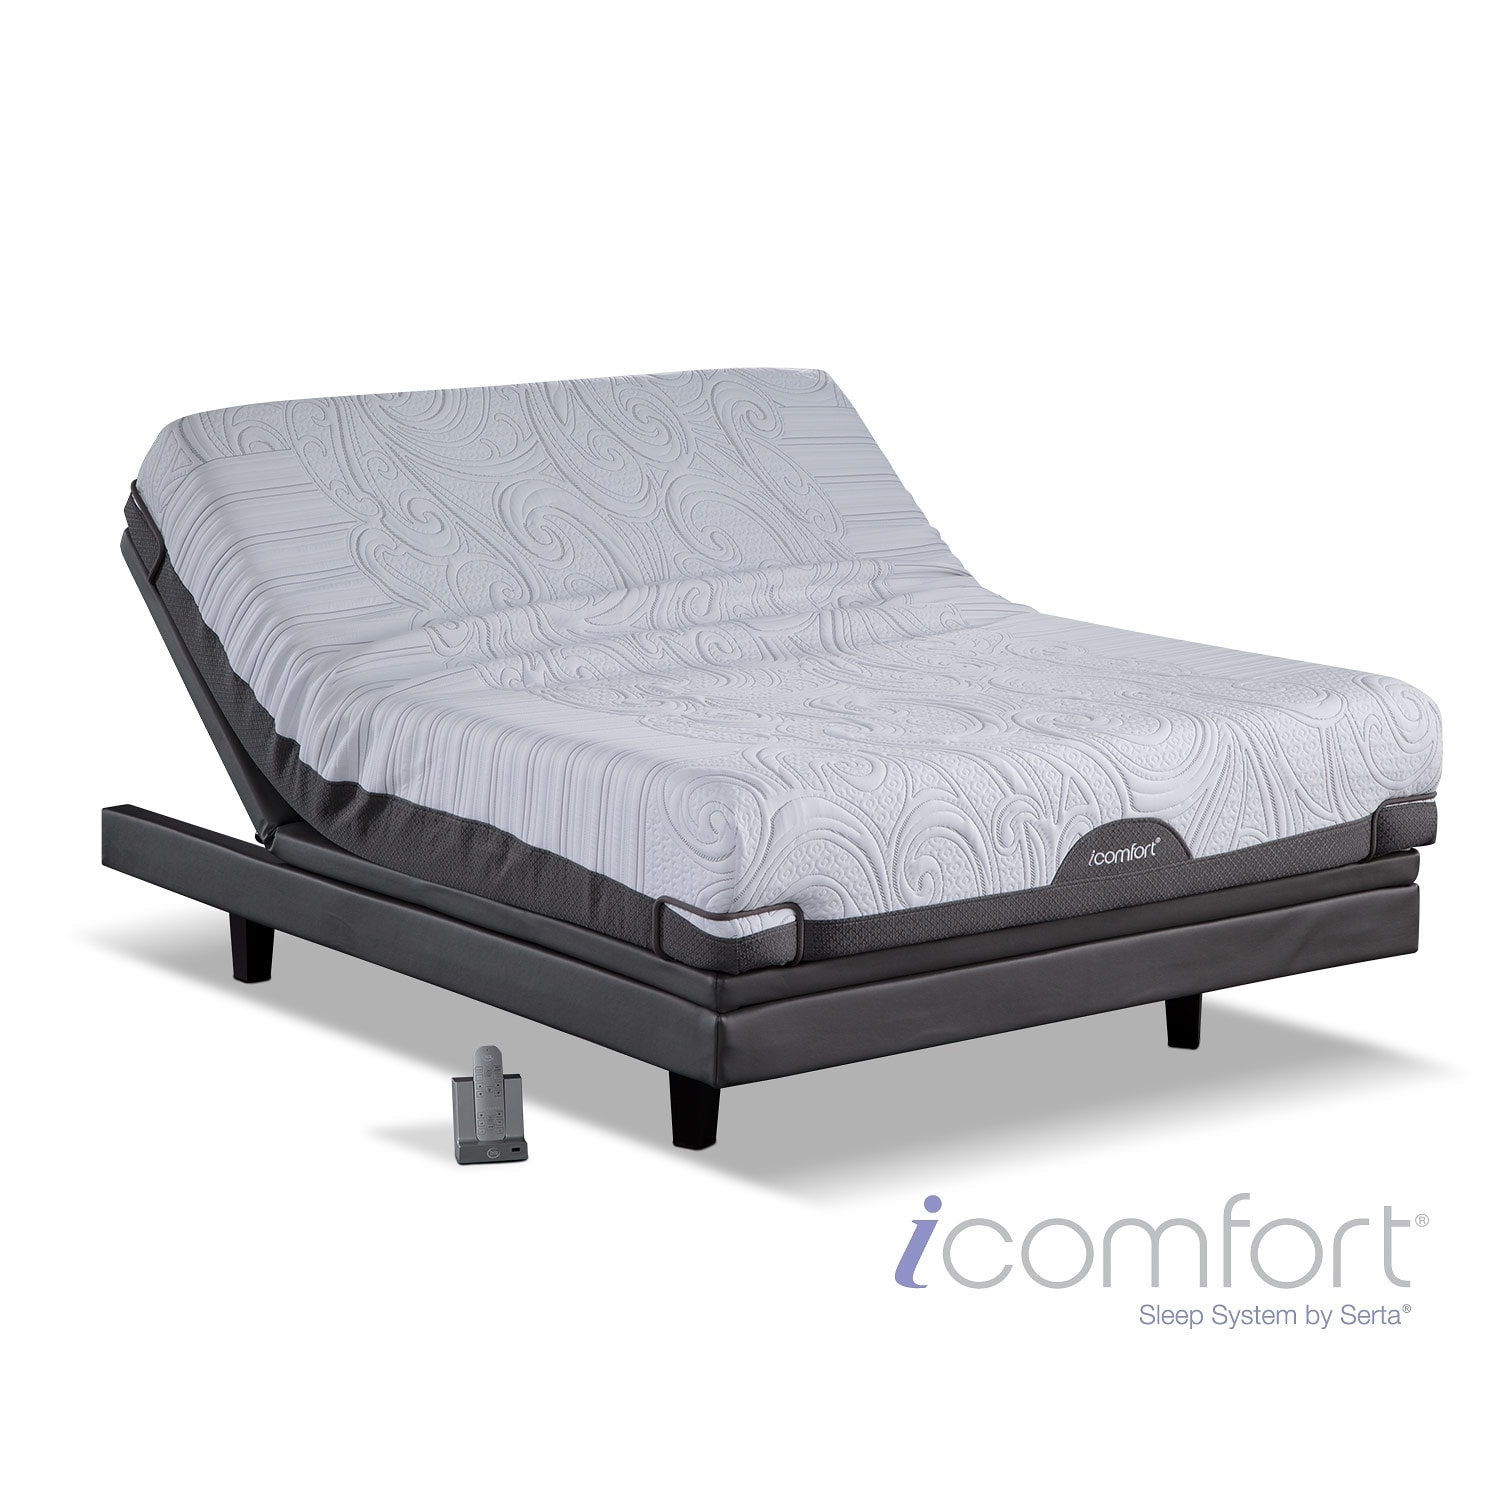 Queen mattress set Mattress sale king